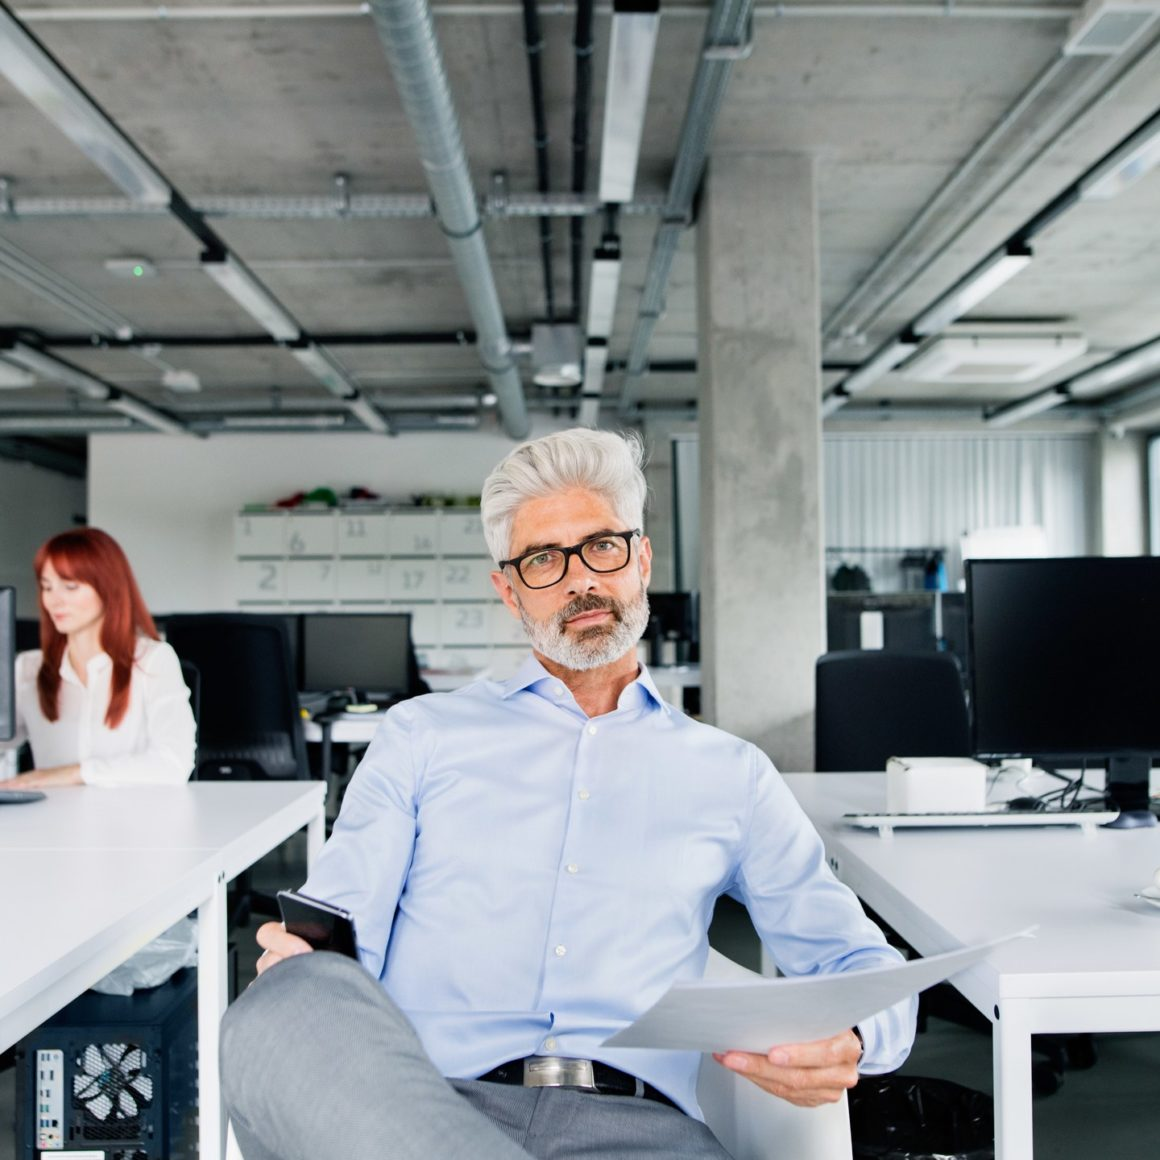 two-business-people-in-the-office-working-PSUQY8T